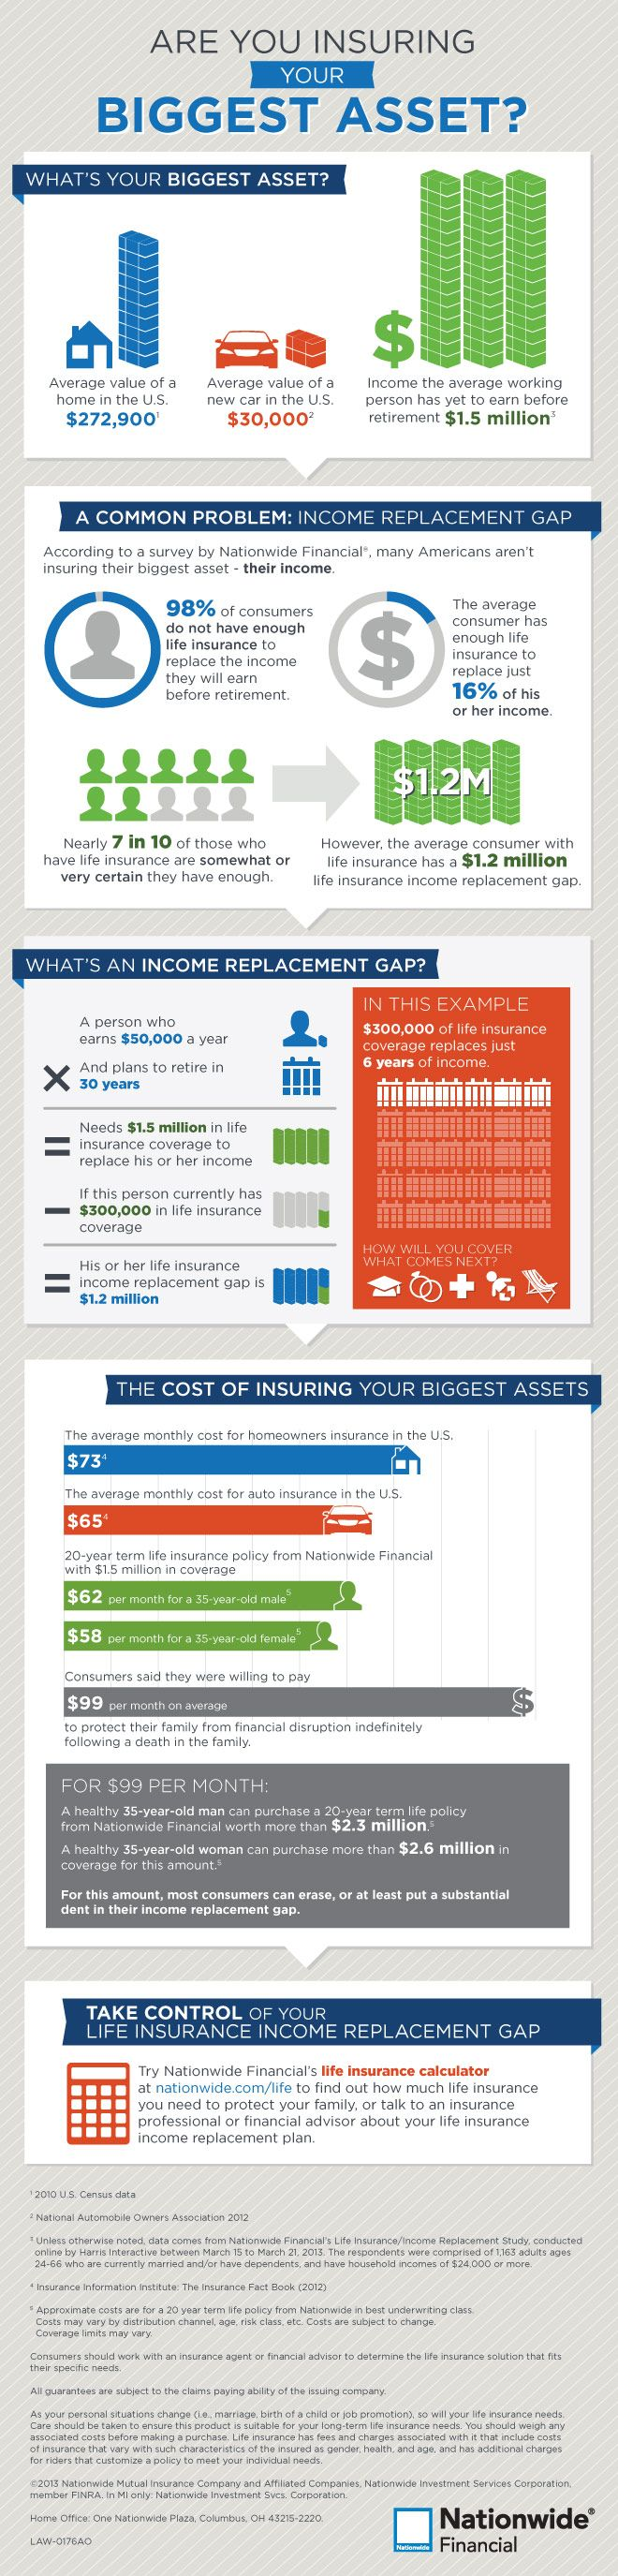 Are You Insuring Your Biggest Asset? [Infographic] Life